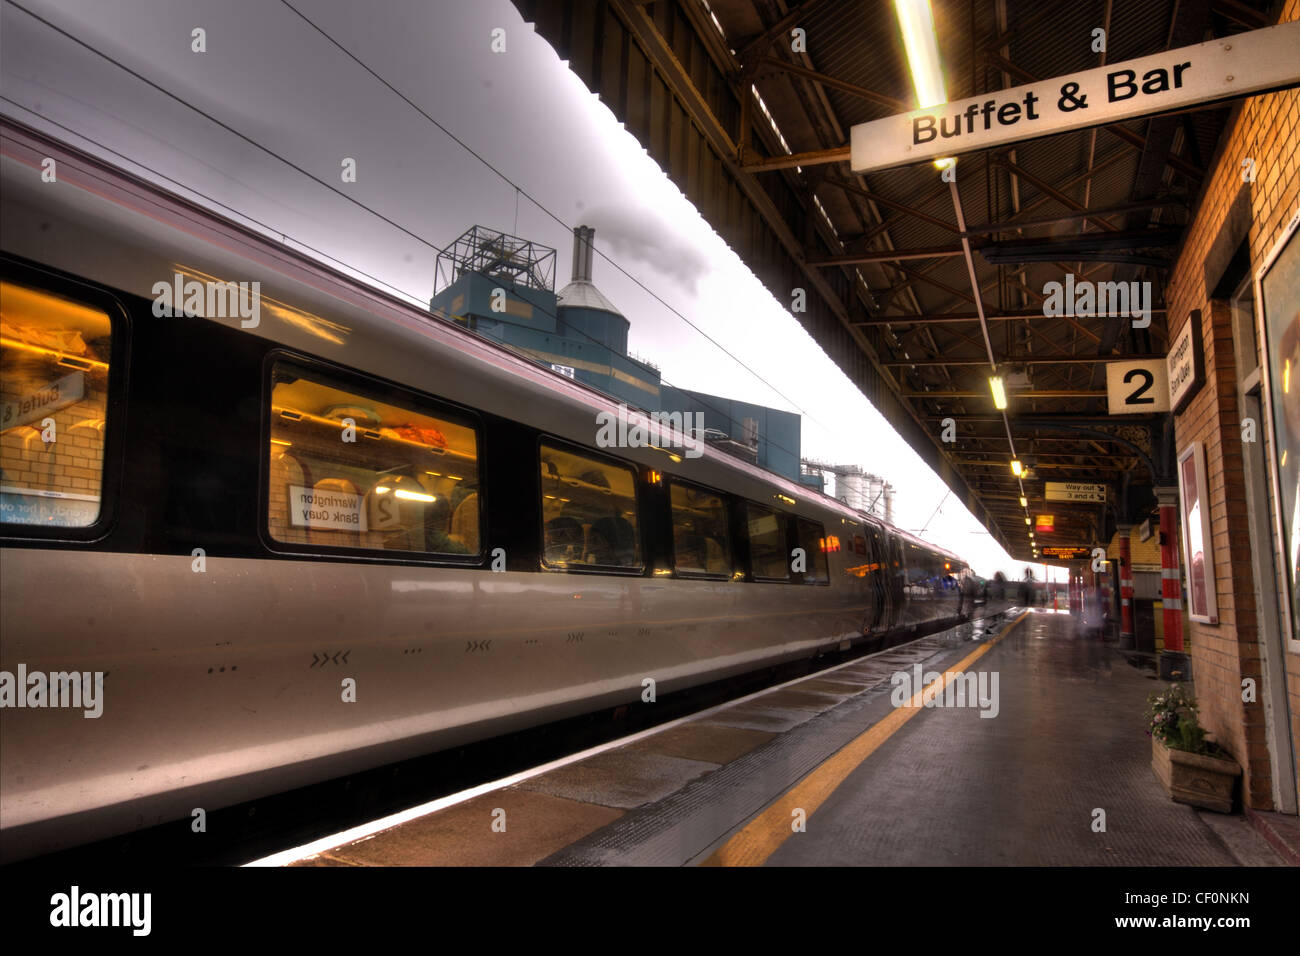 A Virgin train arriving at Bank Quay west coast mainline Railway Station, Warrington, Cheshire, UK at dusk - Stock Image